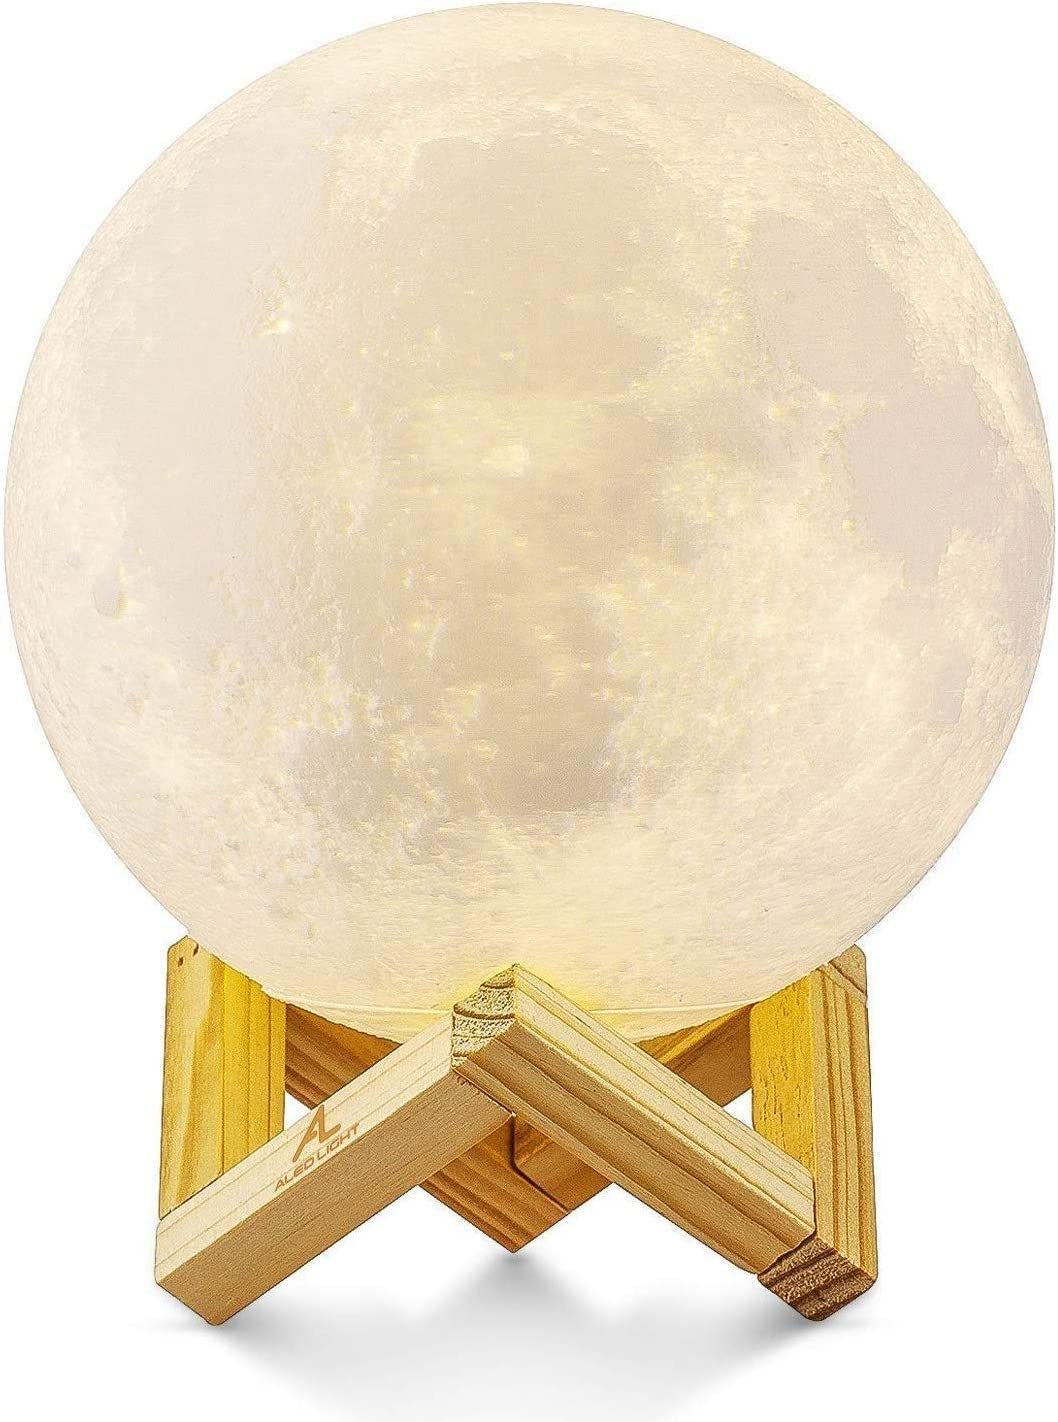 LANLANLife 3D Moon Spring new work one after another Lights The Night Bedr Light USB Charging Lamp Max 51% OFF